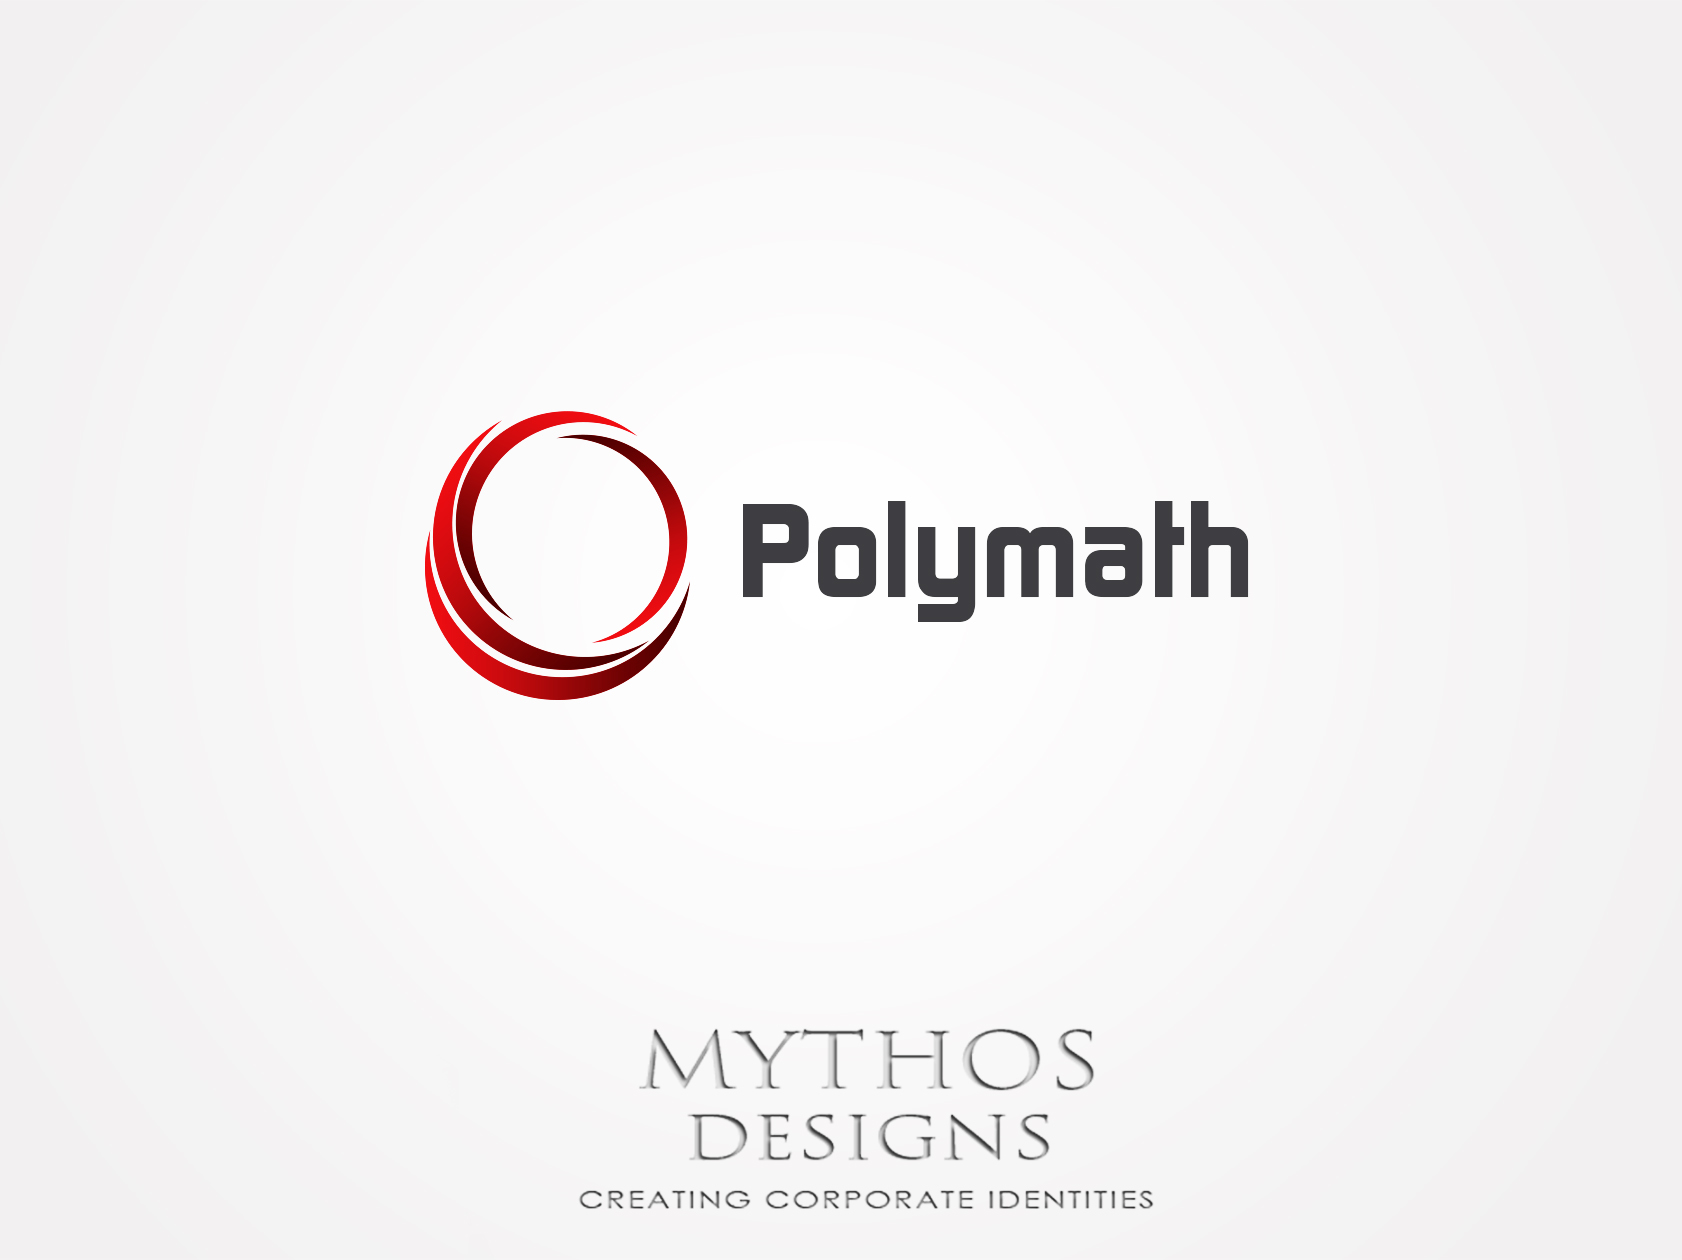 Logo Design by Mythos Designs - Entry No. 31 in the Logo Design Contest Imaginative Logo Design for Polymath.